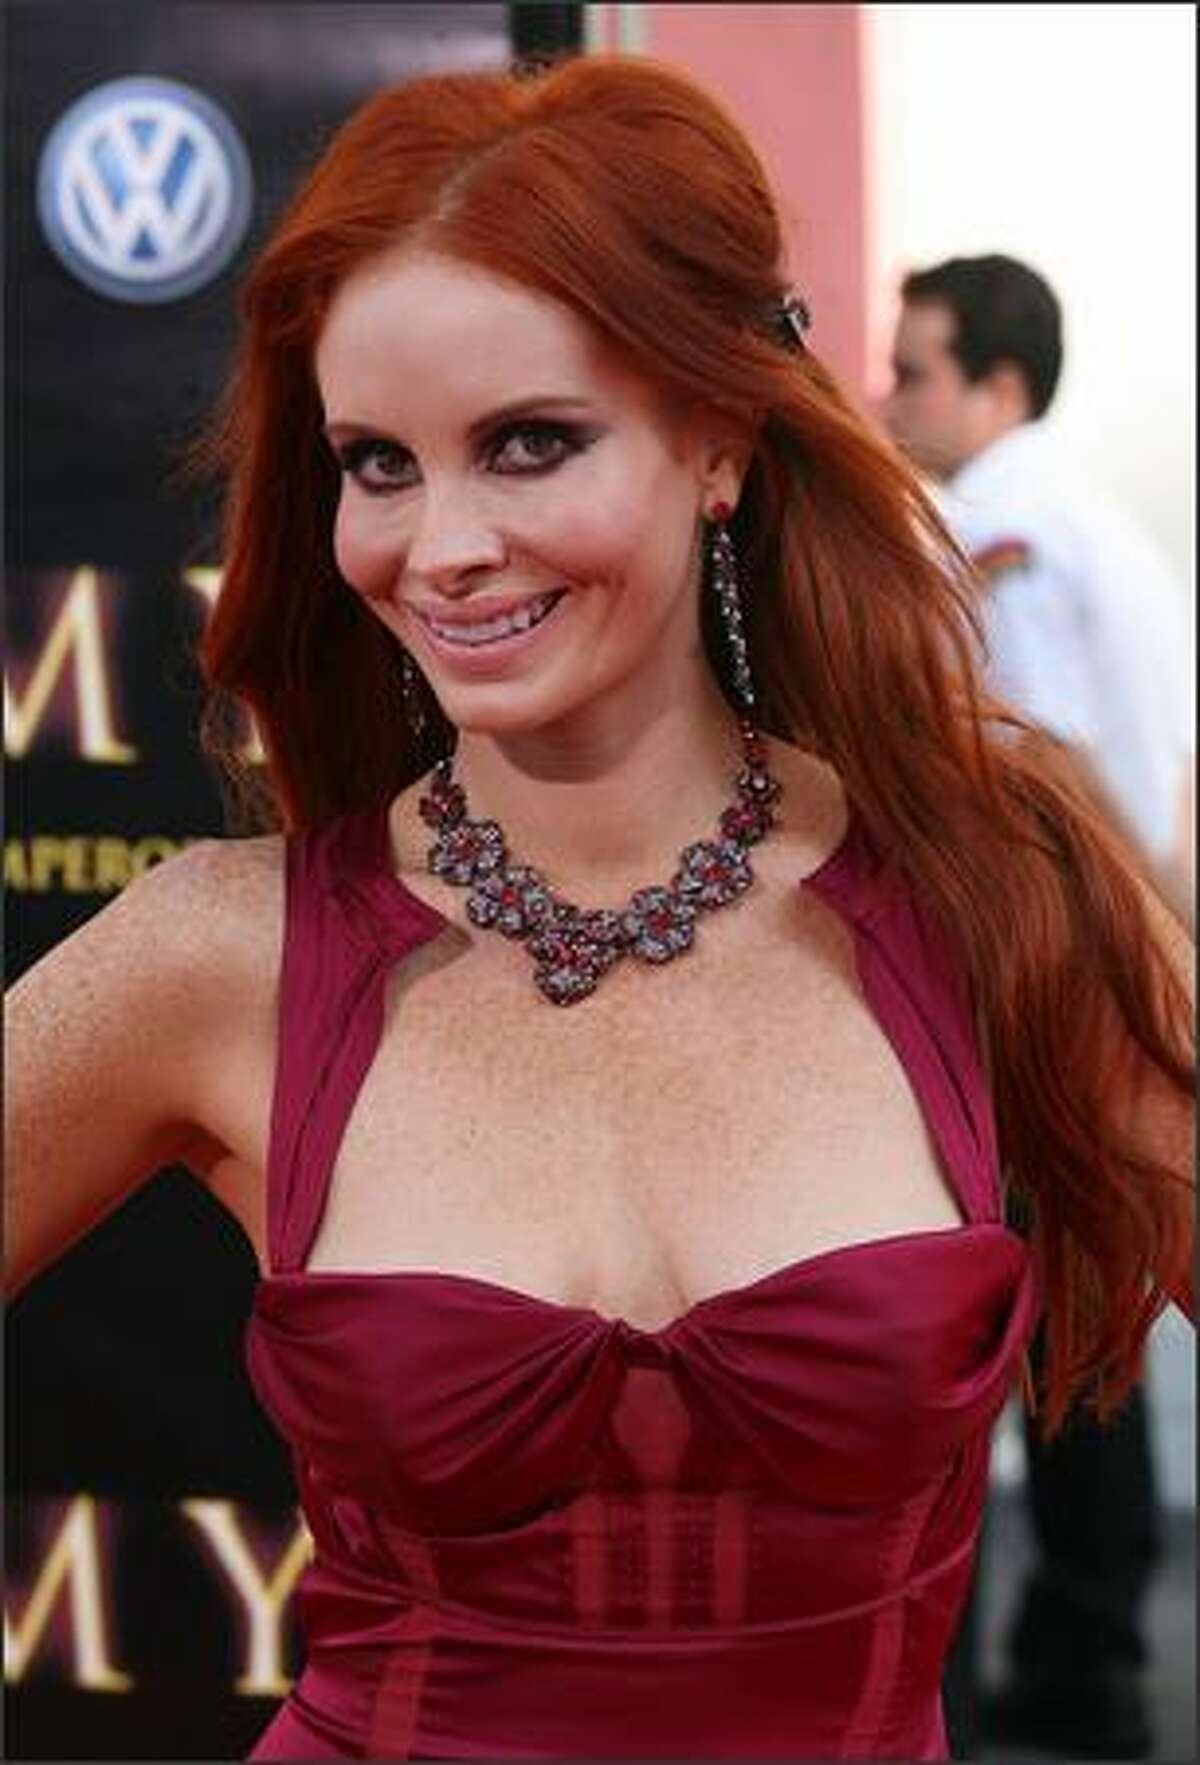 """Actress Phoebe Price attends the premiere of Universal Picture's """"The Mummy: Tomb of the Dragon Emperor"""" at the Gibson Amphitheatre at Universal City Walk in Los Angeles, California."""